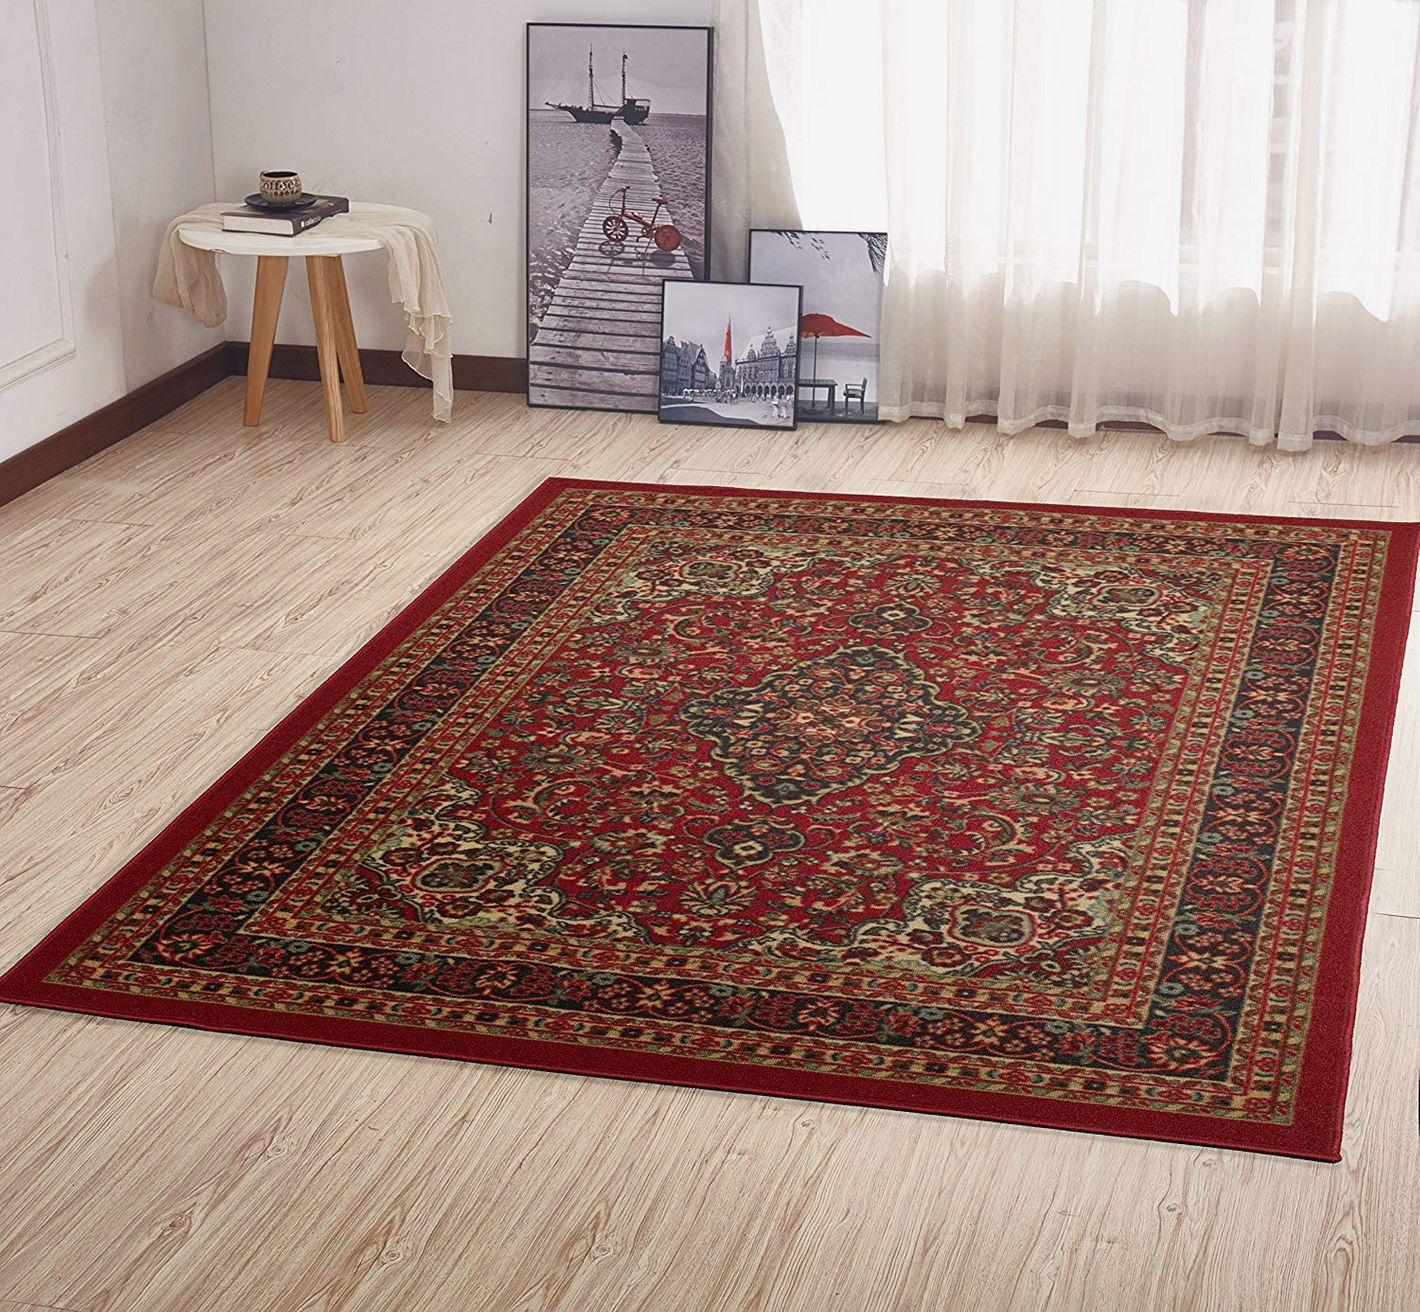 "Ottomanson Ottohome Persian Heriz Oriental Design with Non-Skid Rubber Backing, 60"" L x 78"" W, Red"